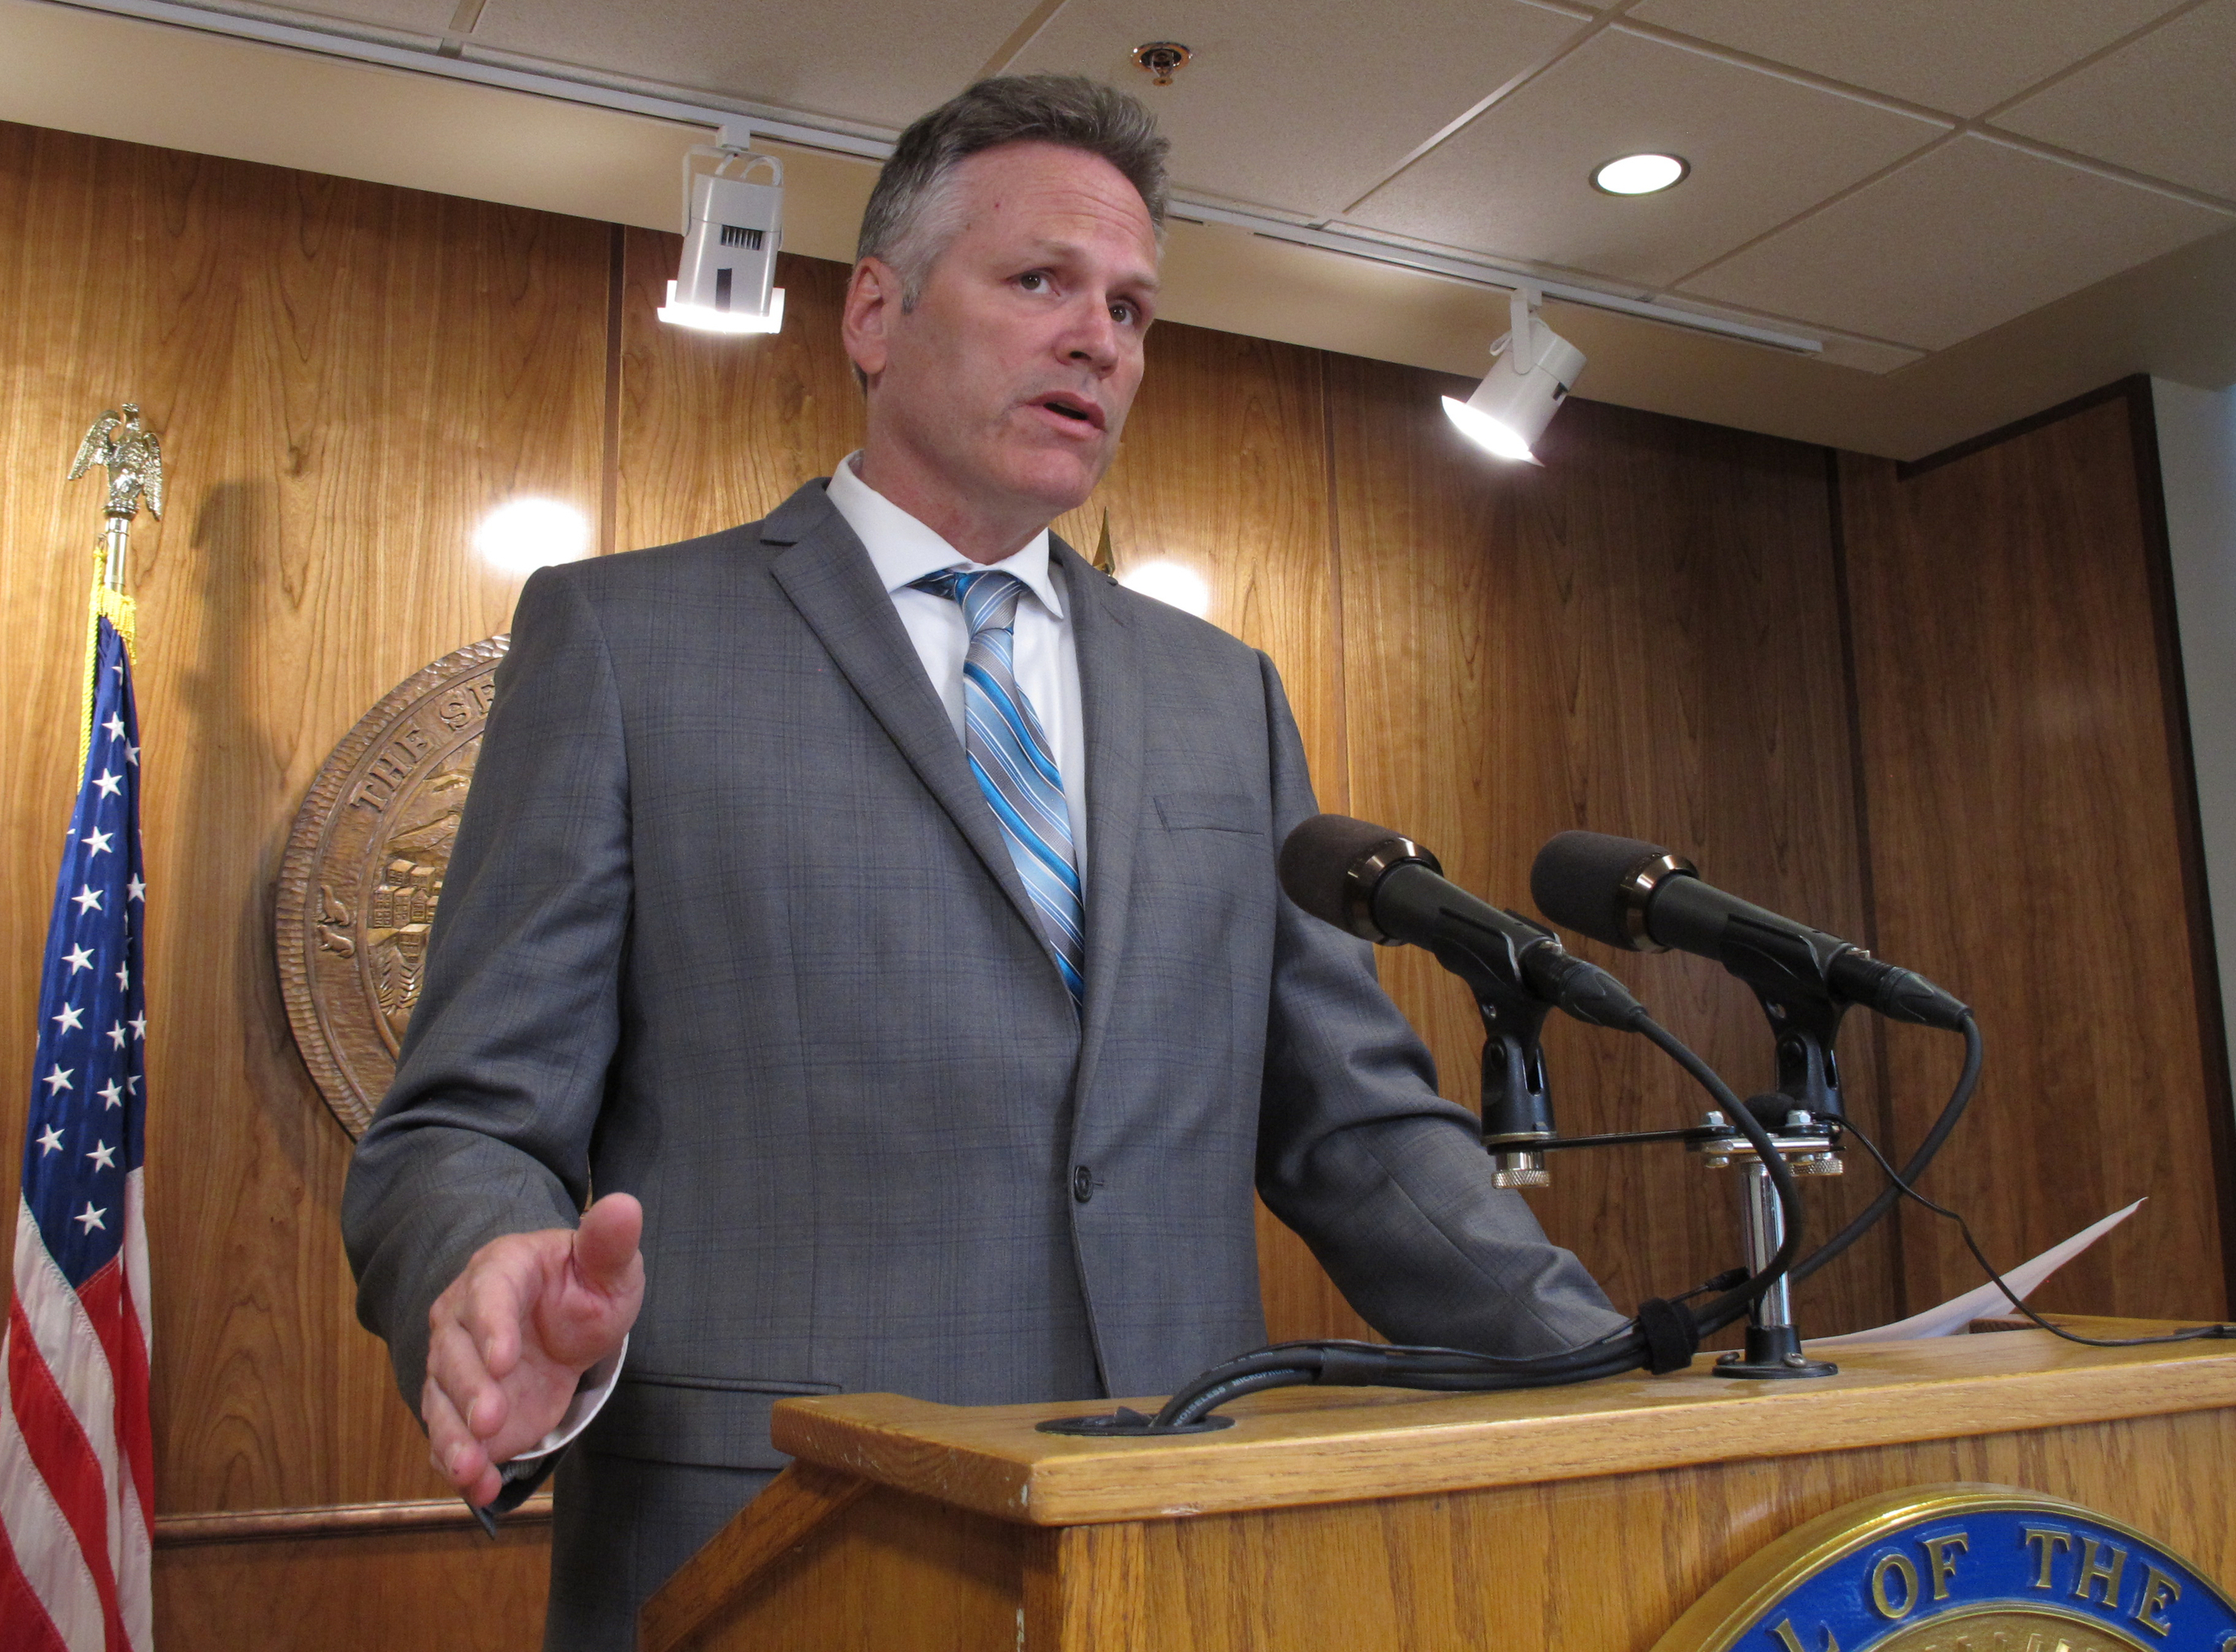 Alaska Gov. Mike Dunleavy speaks to reporters about his budget vetoes at the state Capitol in Juneau, Alaska Friday, June 28, 2019. The university system, health and social service programs and public broadcasting were among the areas affected by vetoes. The budget agreed to by the House and Senate cut state support for the university system by a fraction of what Dunleavy proposed. Lawmakers have the ability to override budget vetoes if they can muster sufficient support.